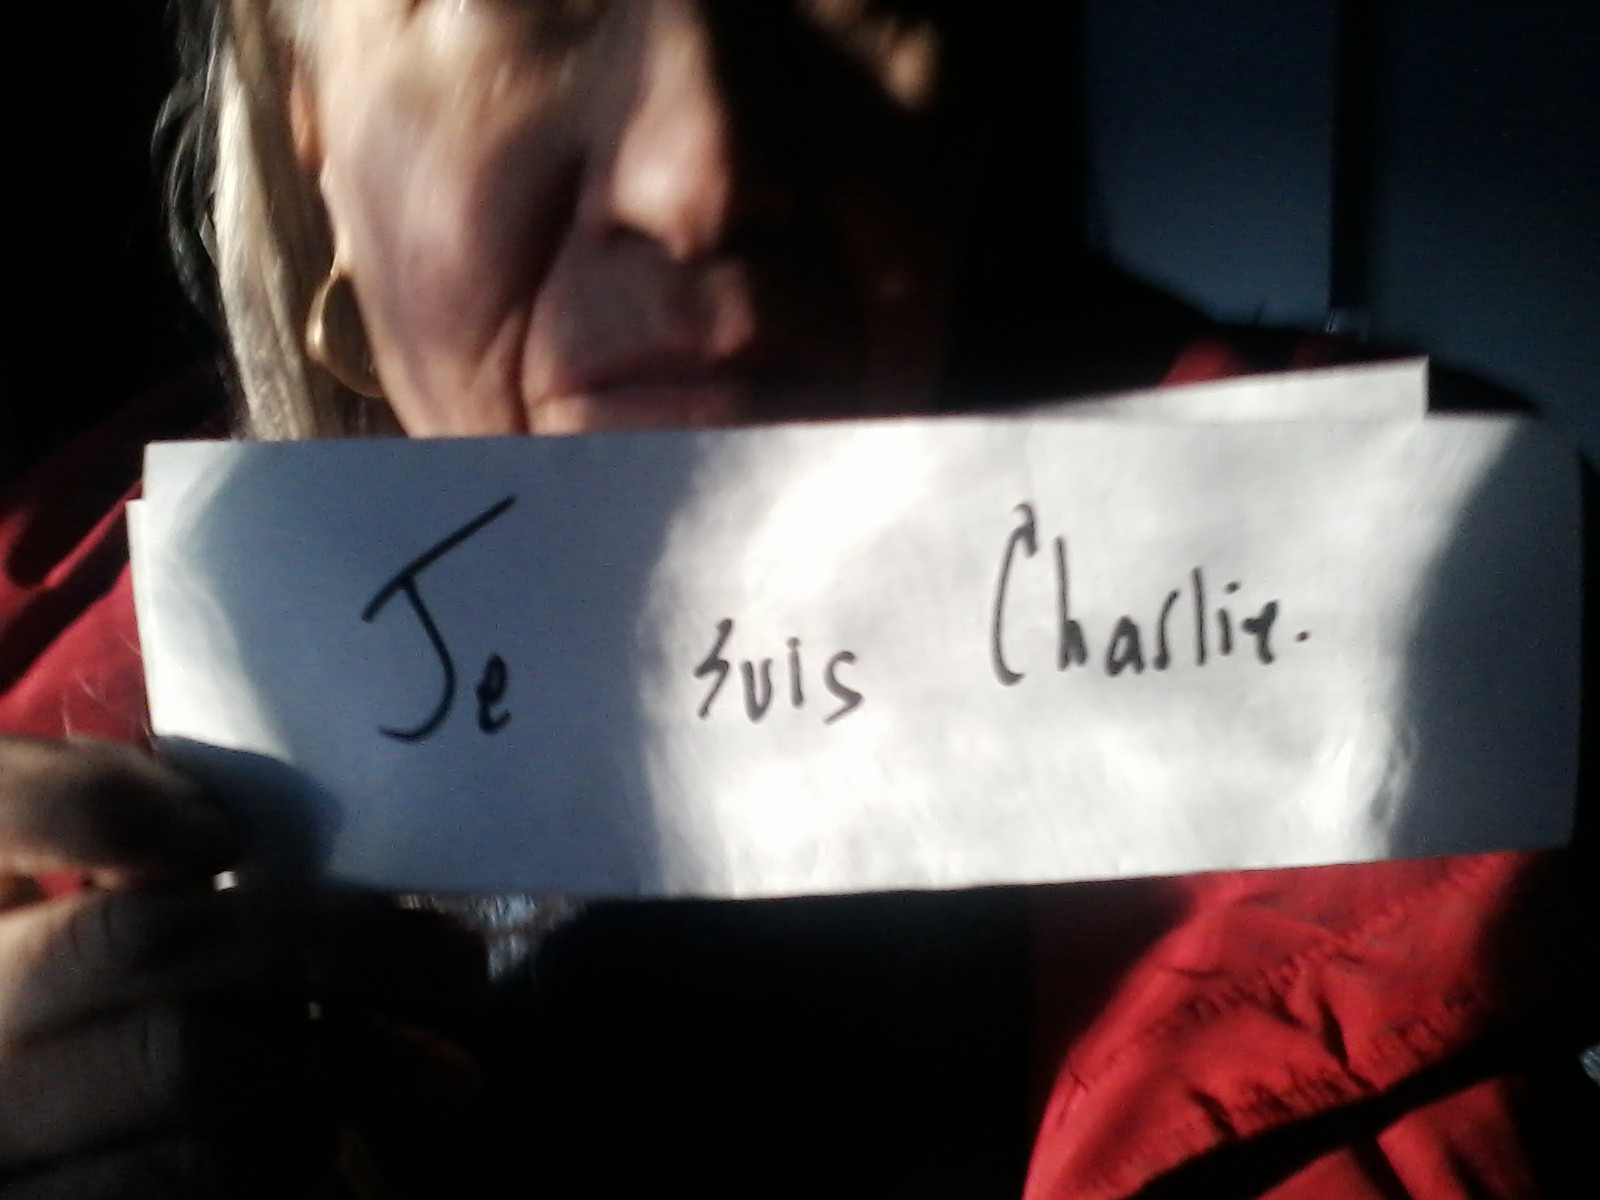 Jesuischarlie2_small